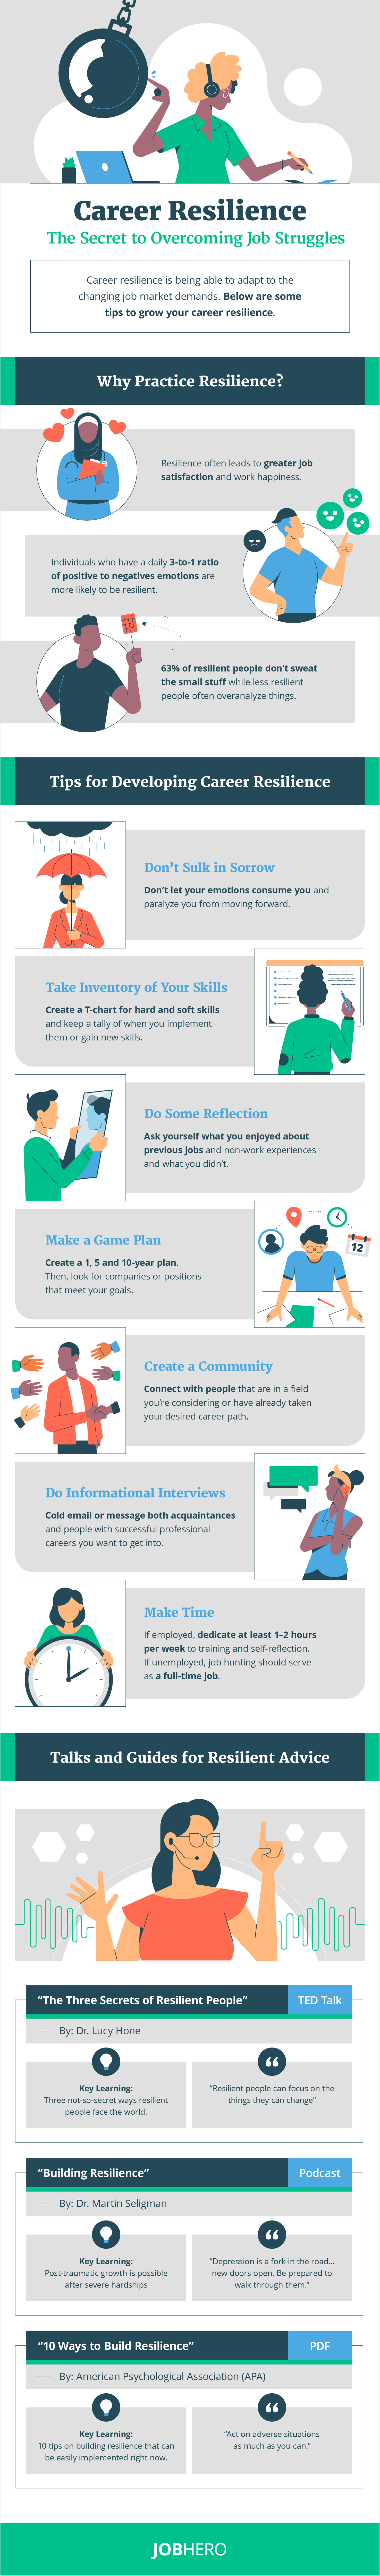 Career Resilience Infographic